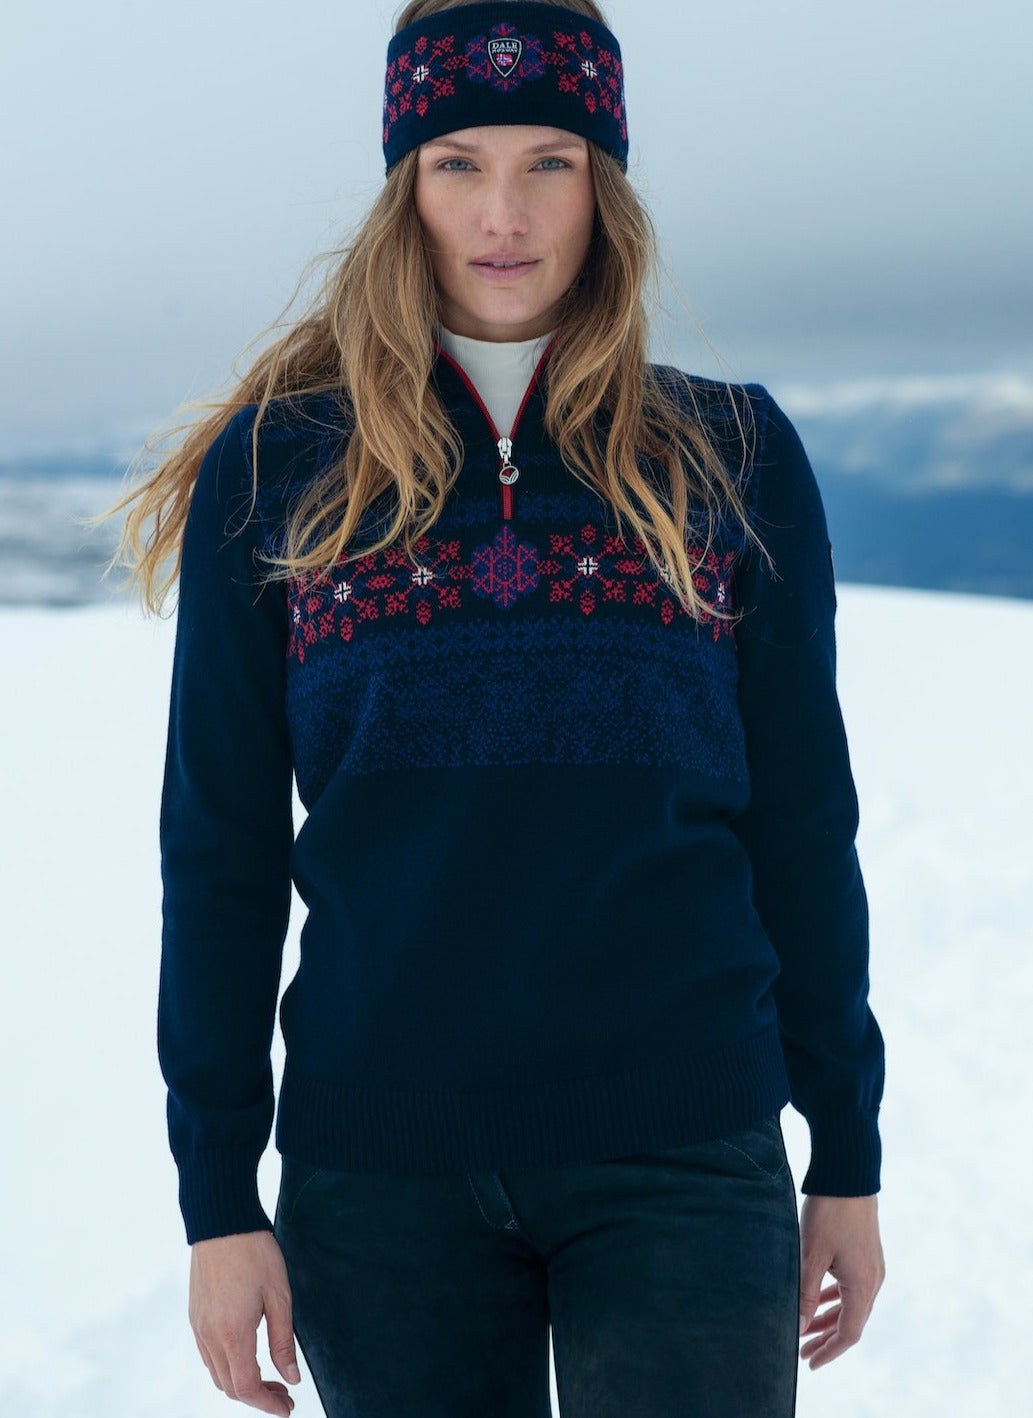 Dale of Norway - Oberstdorf Women's sweater.